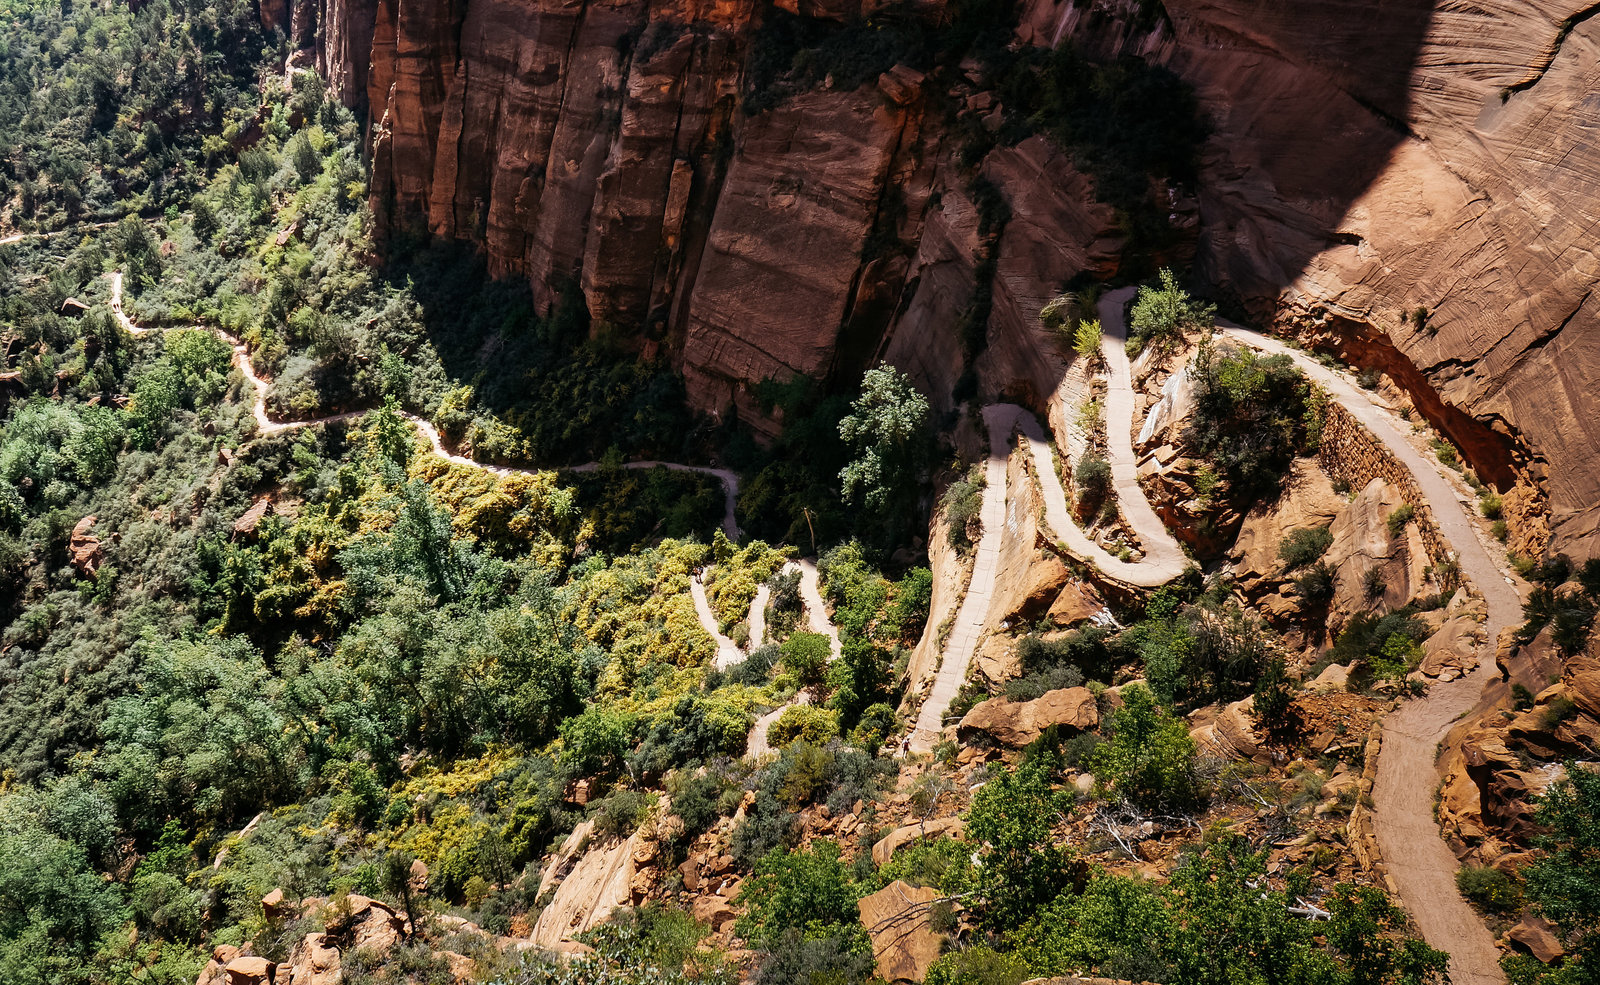 Sasha_Reiko_Photography_Travel_Utah_Arches_Canyon_Lands_Zion_Grand_Canyon-70